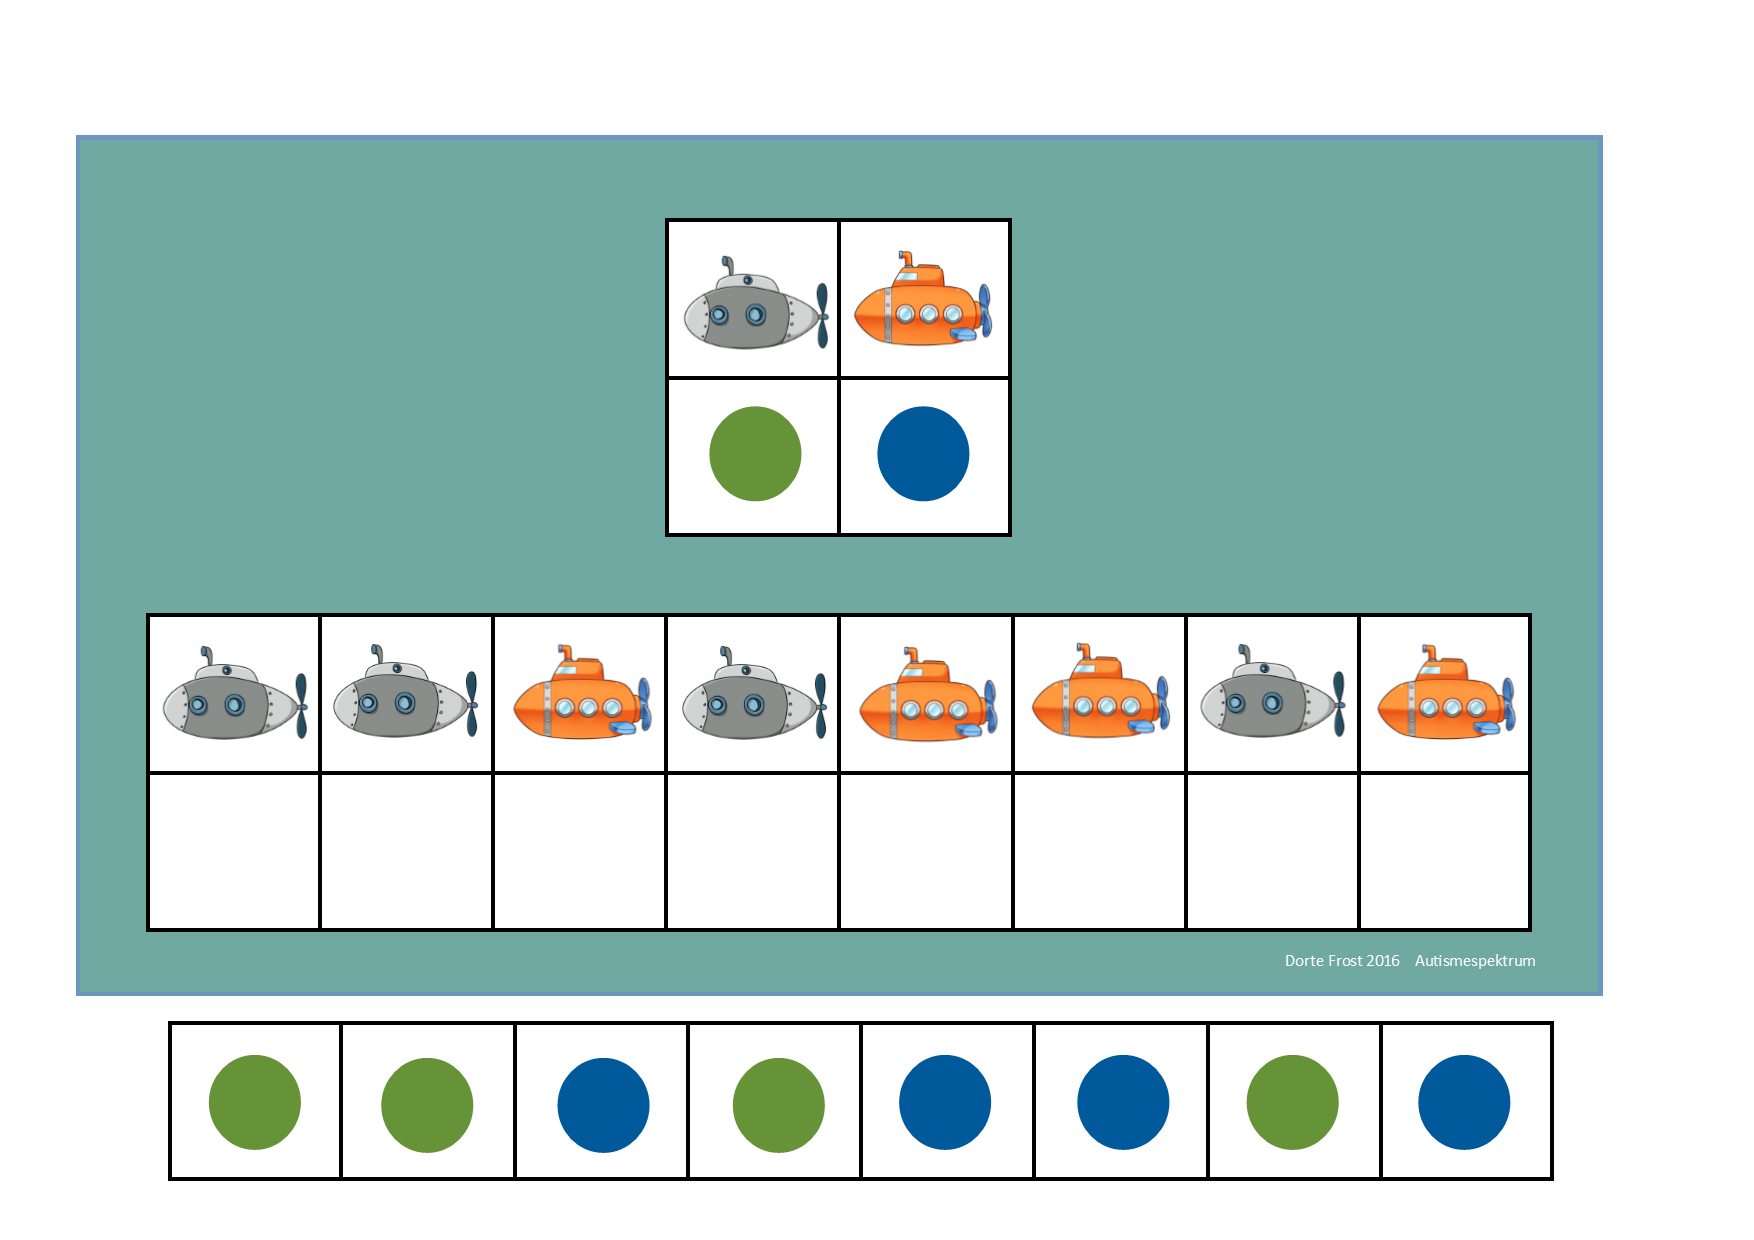 Board And Tiles For The Submarine Visual Perception Game